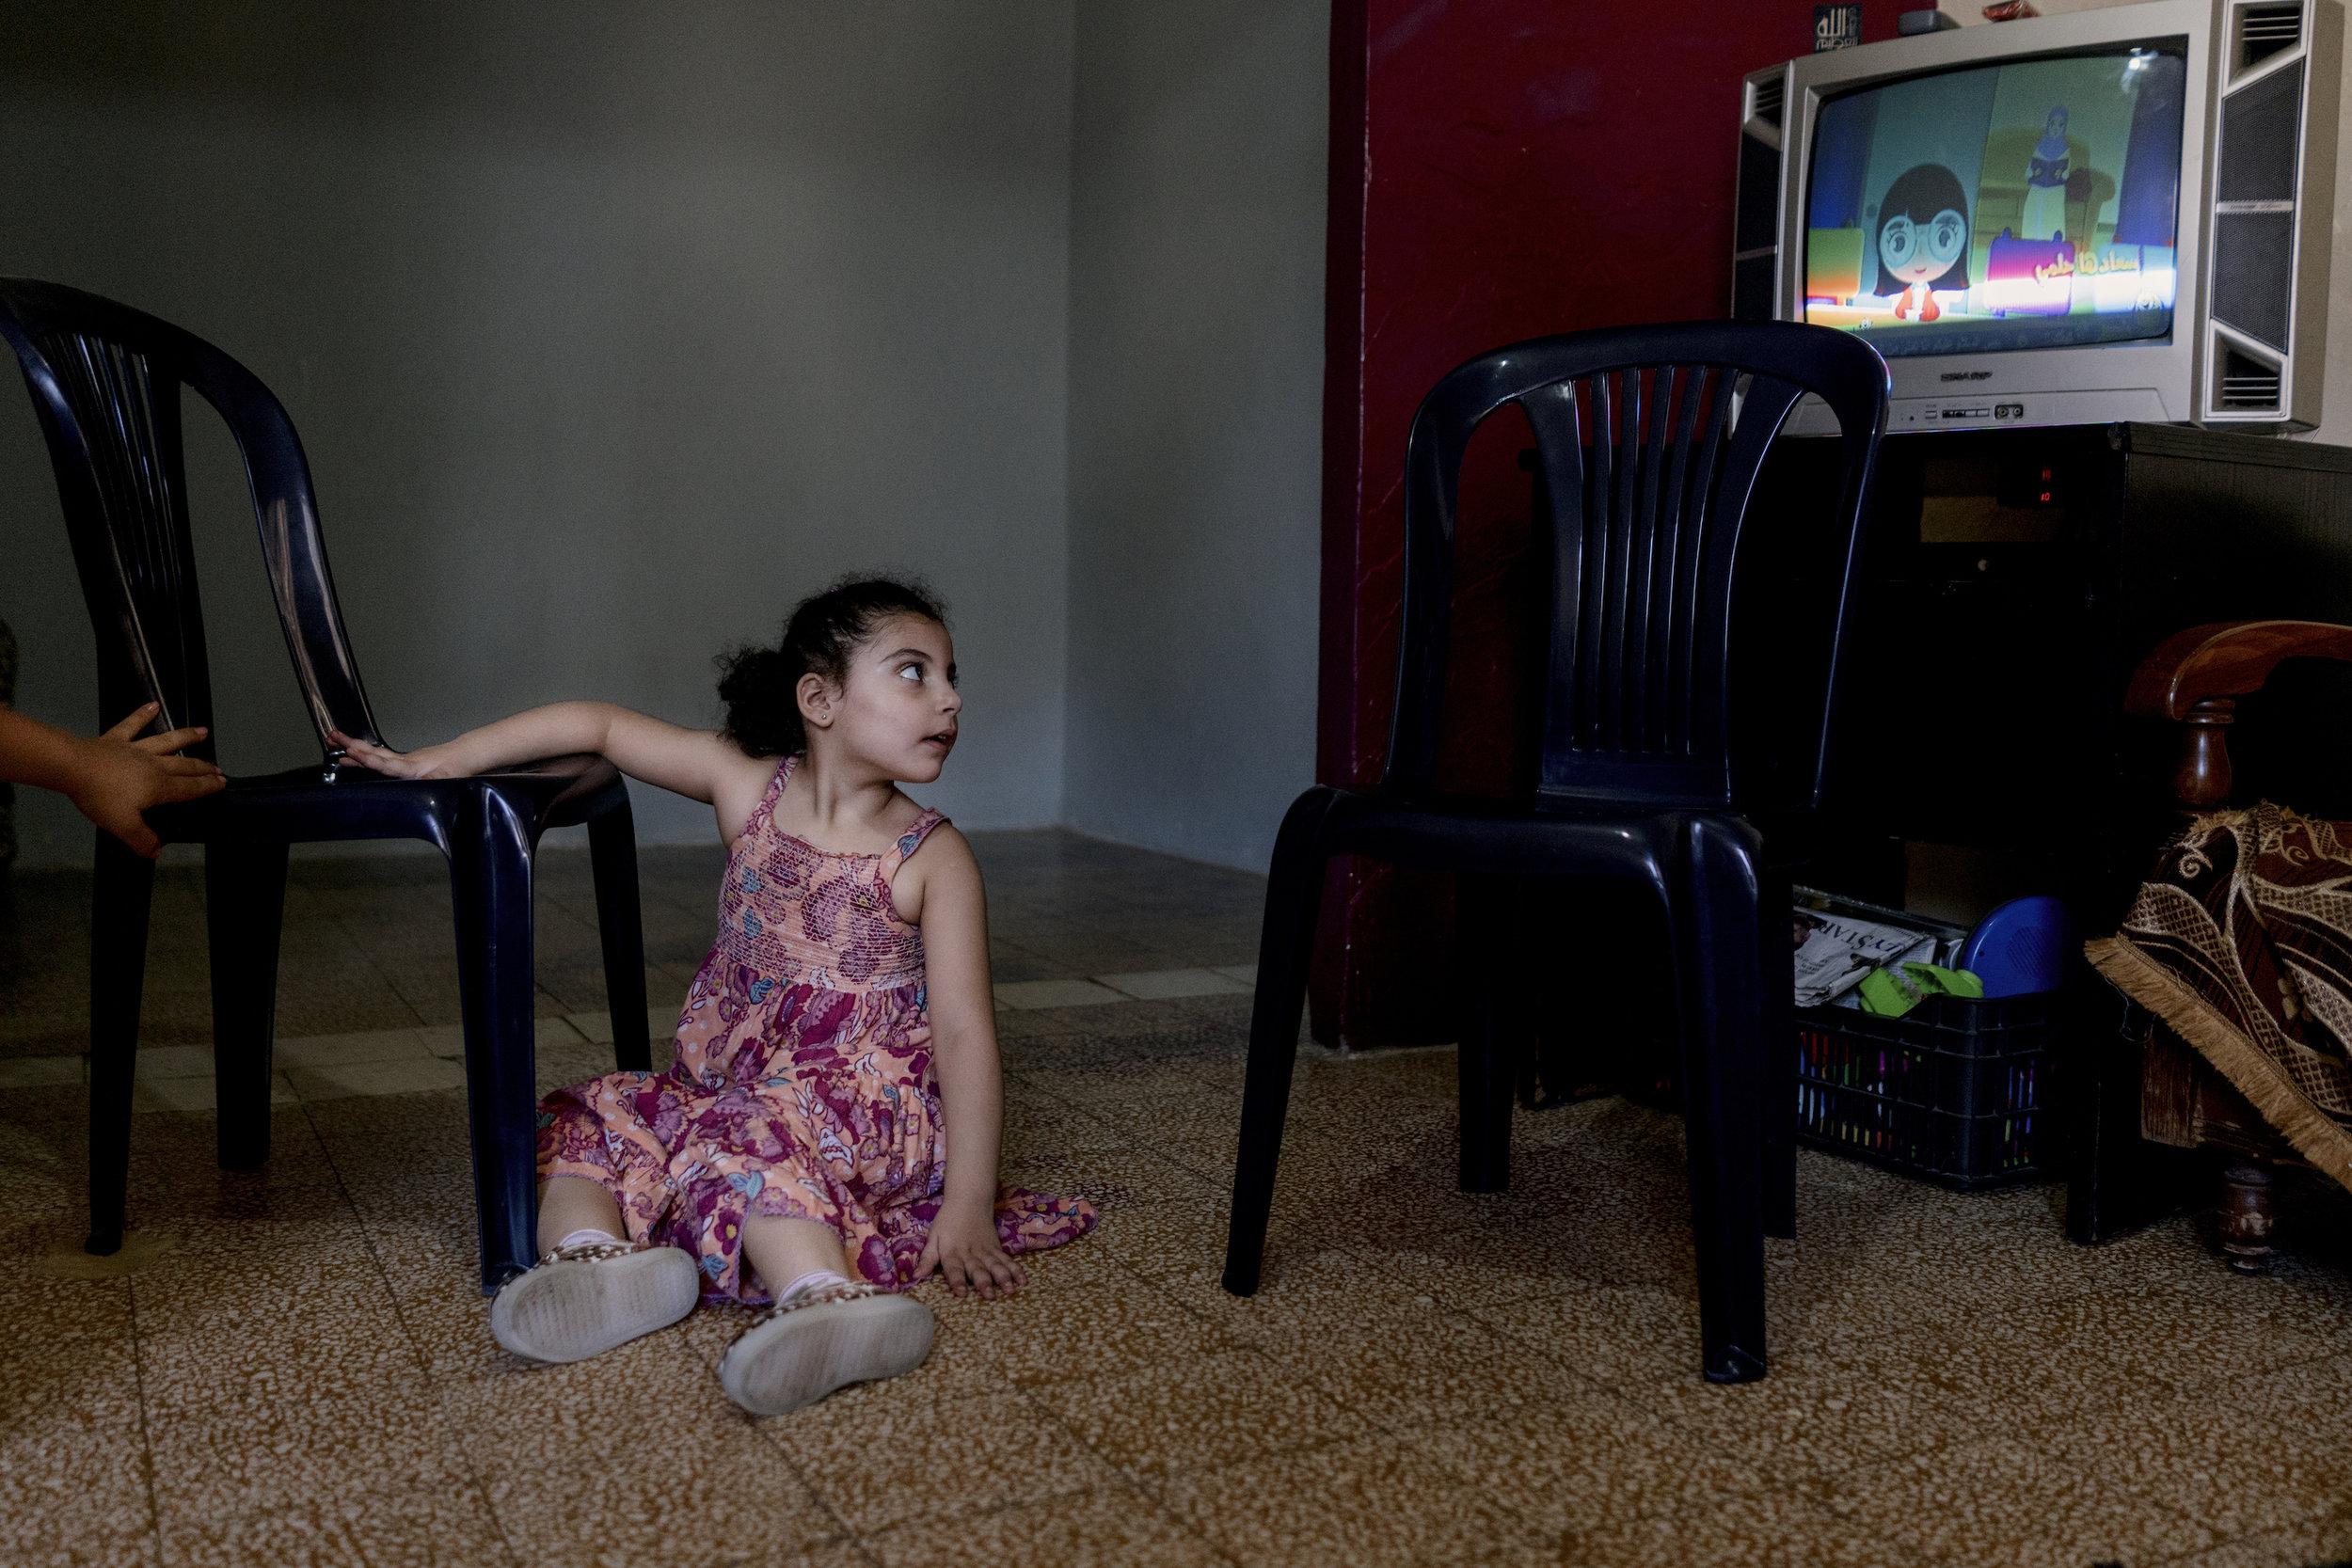 Khadijah watches TV in her small apartment in Beirut.Khadijah Moussa (6 years old) comes from a Syrian family composed of 7 members. They moved to Lebanon 5 years ago during the Syrian crisis for protection and survival. Khadija is one of 5 children, aged 6 years old and physically disabled.